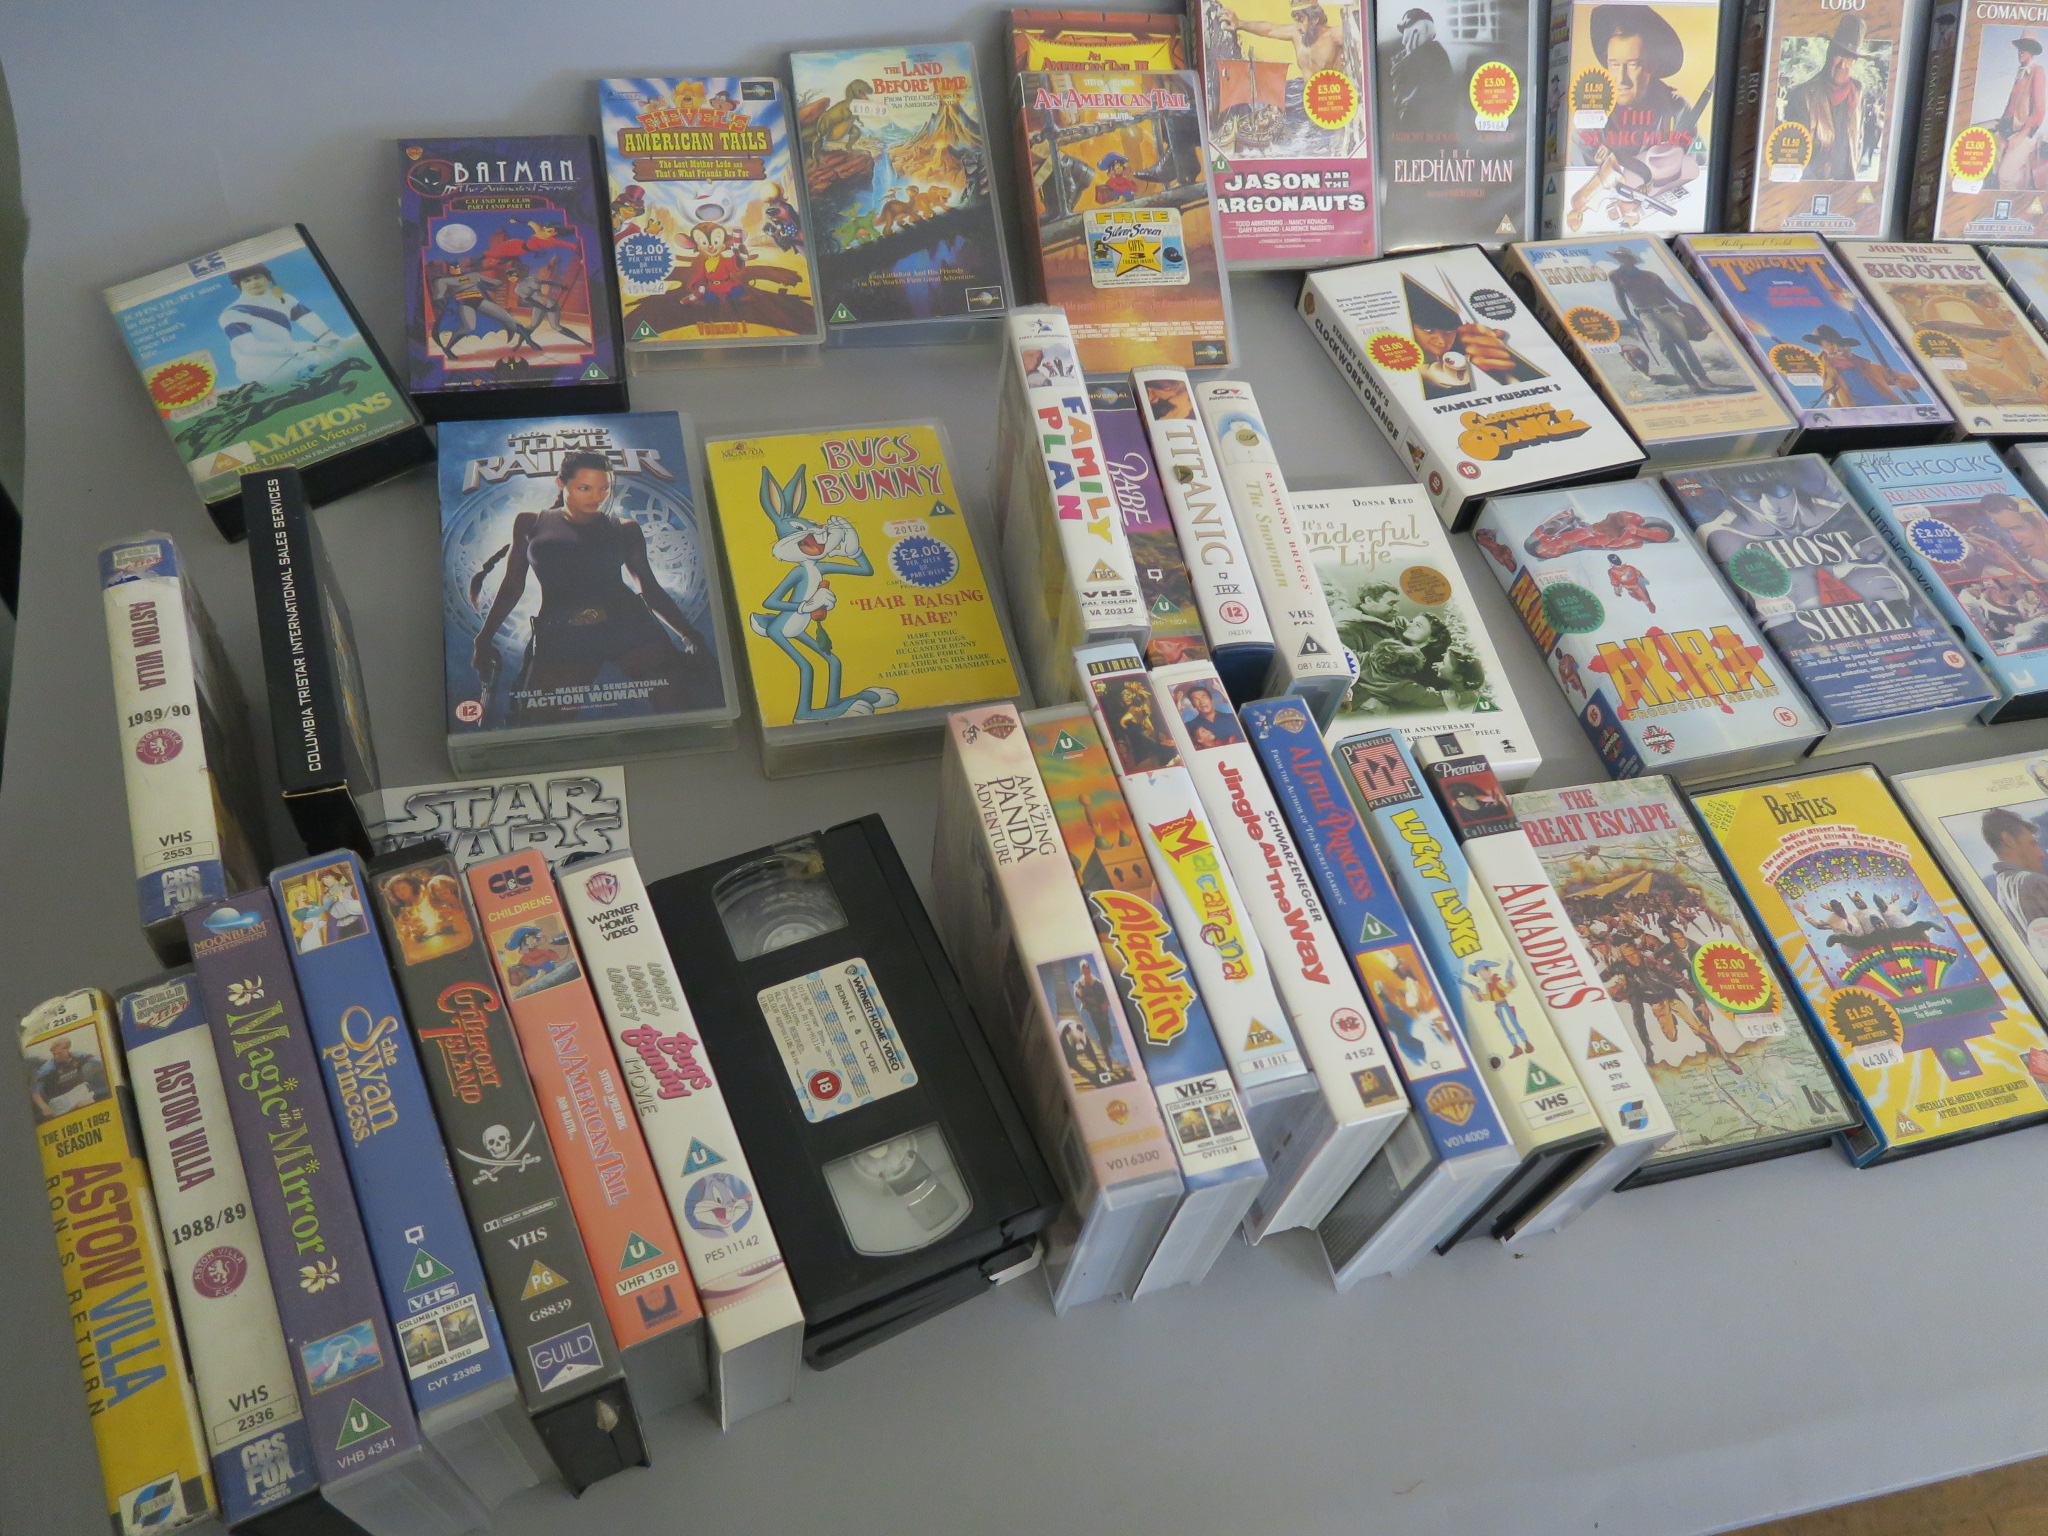 Lot 28 - Over 80 vhs ex-rental videos directly from a closed video shop and offered for sale for the first